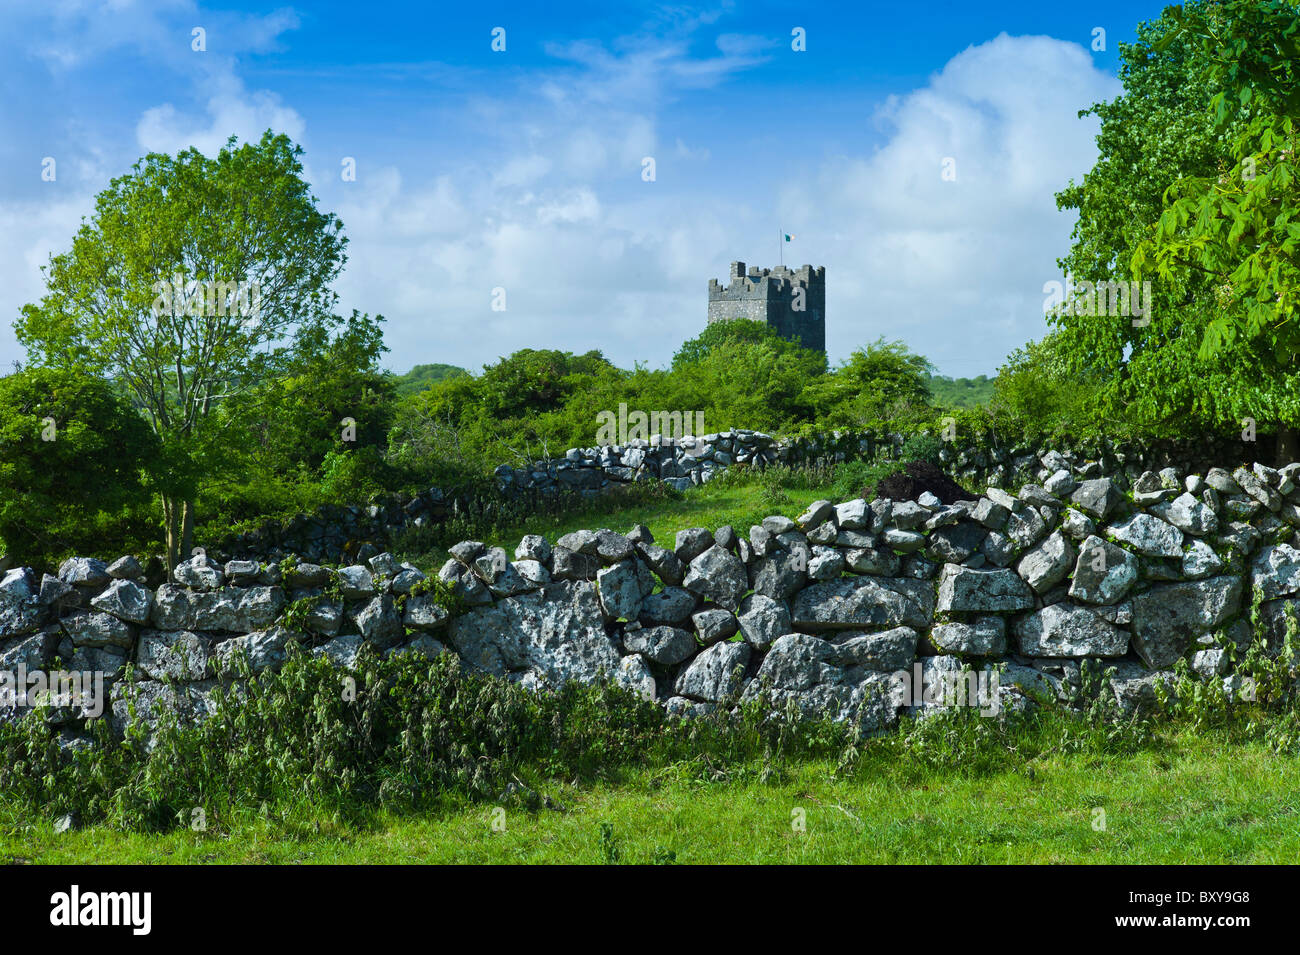 Castle of Dysert O'Dea, 15th Century tower house, near Corofin in County Clare, West of Ireland - Stock Image